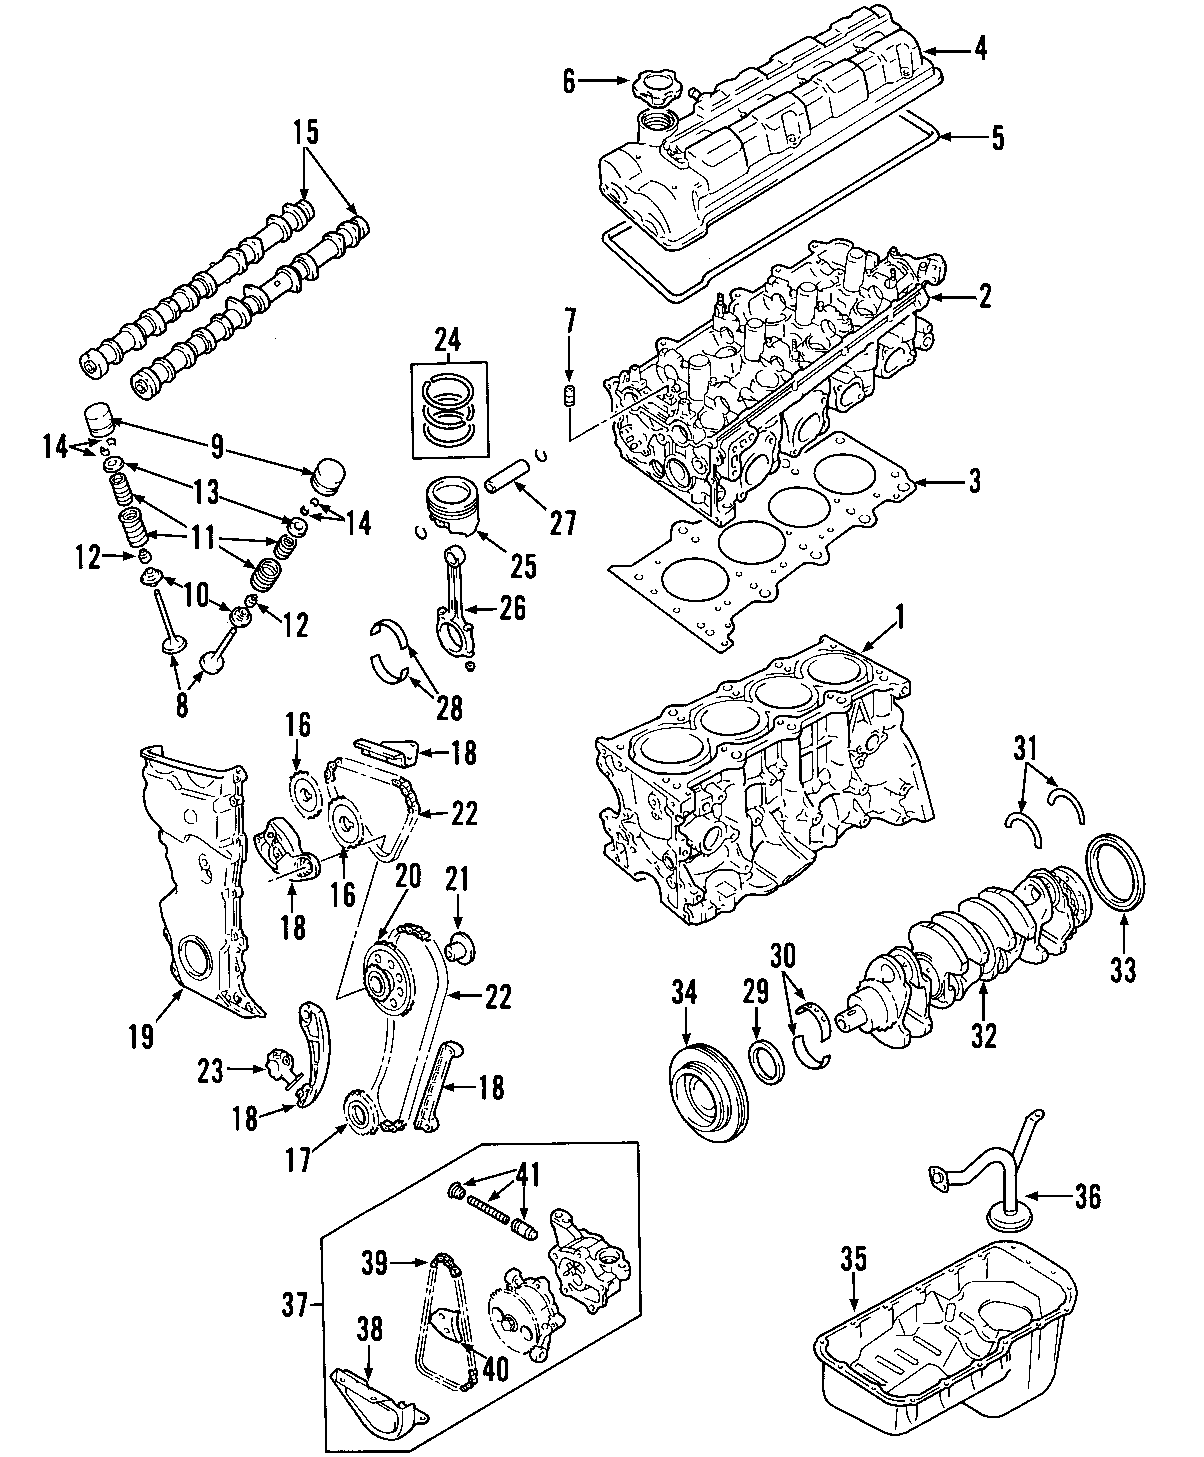 Chevrolet Tracker Engine Timing Cover 2 0 Liter Tracker